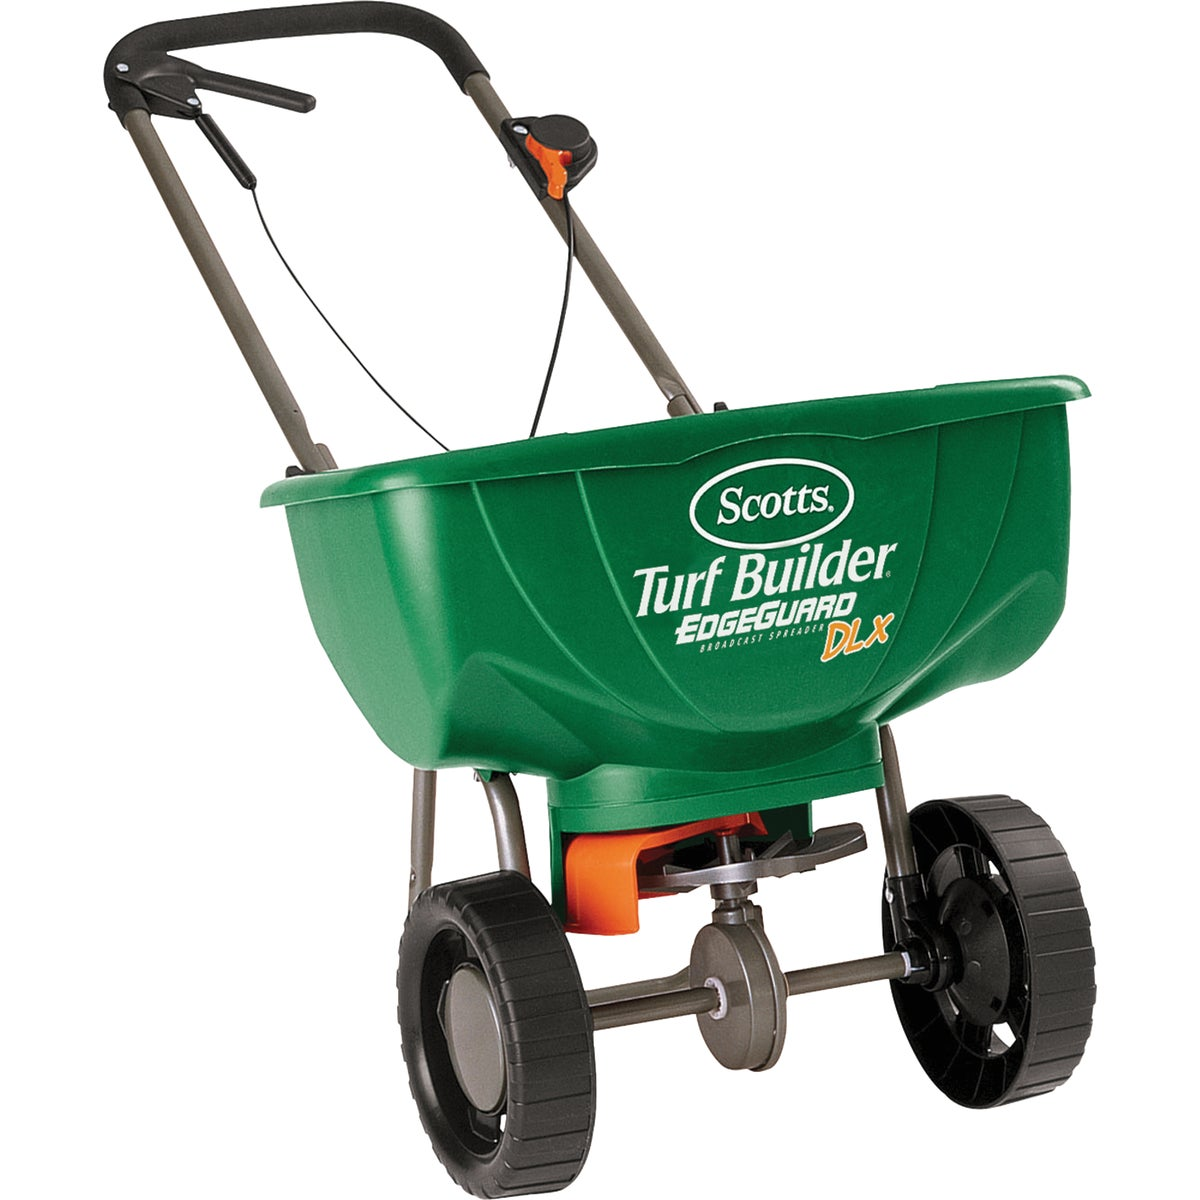 DLX BROADCAST SPREADER - 76232 by Scotts Company